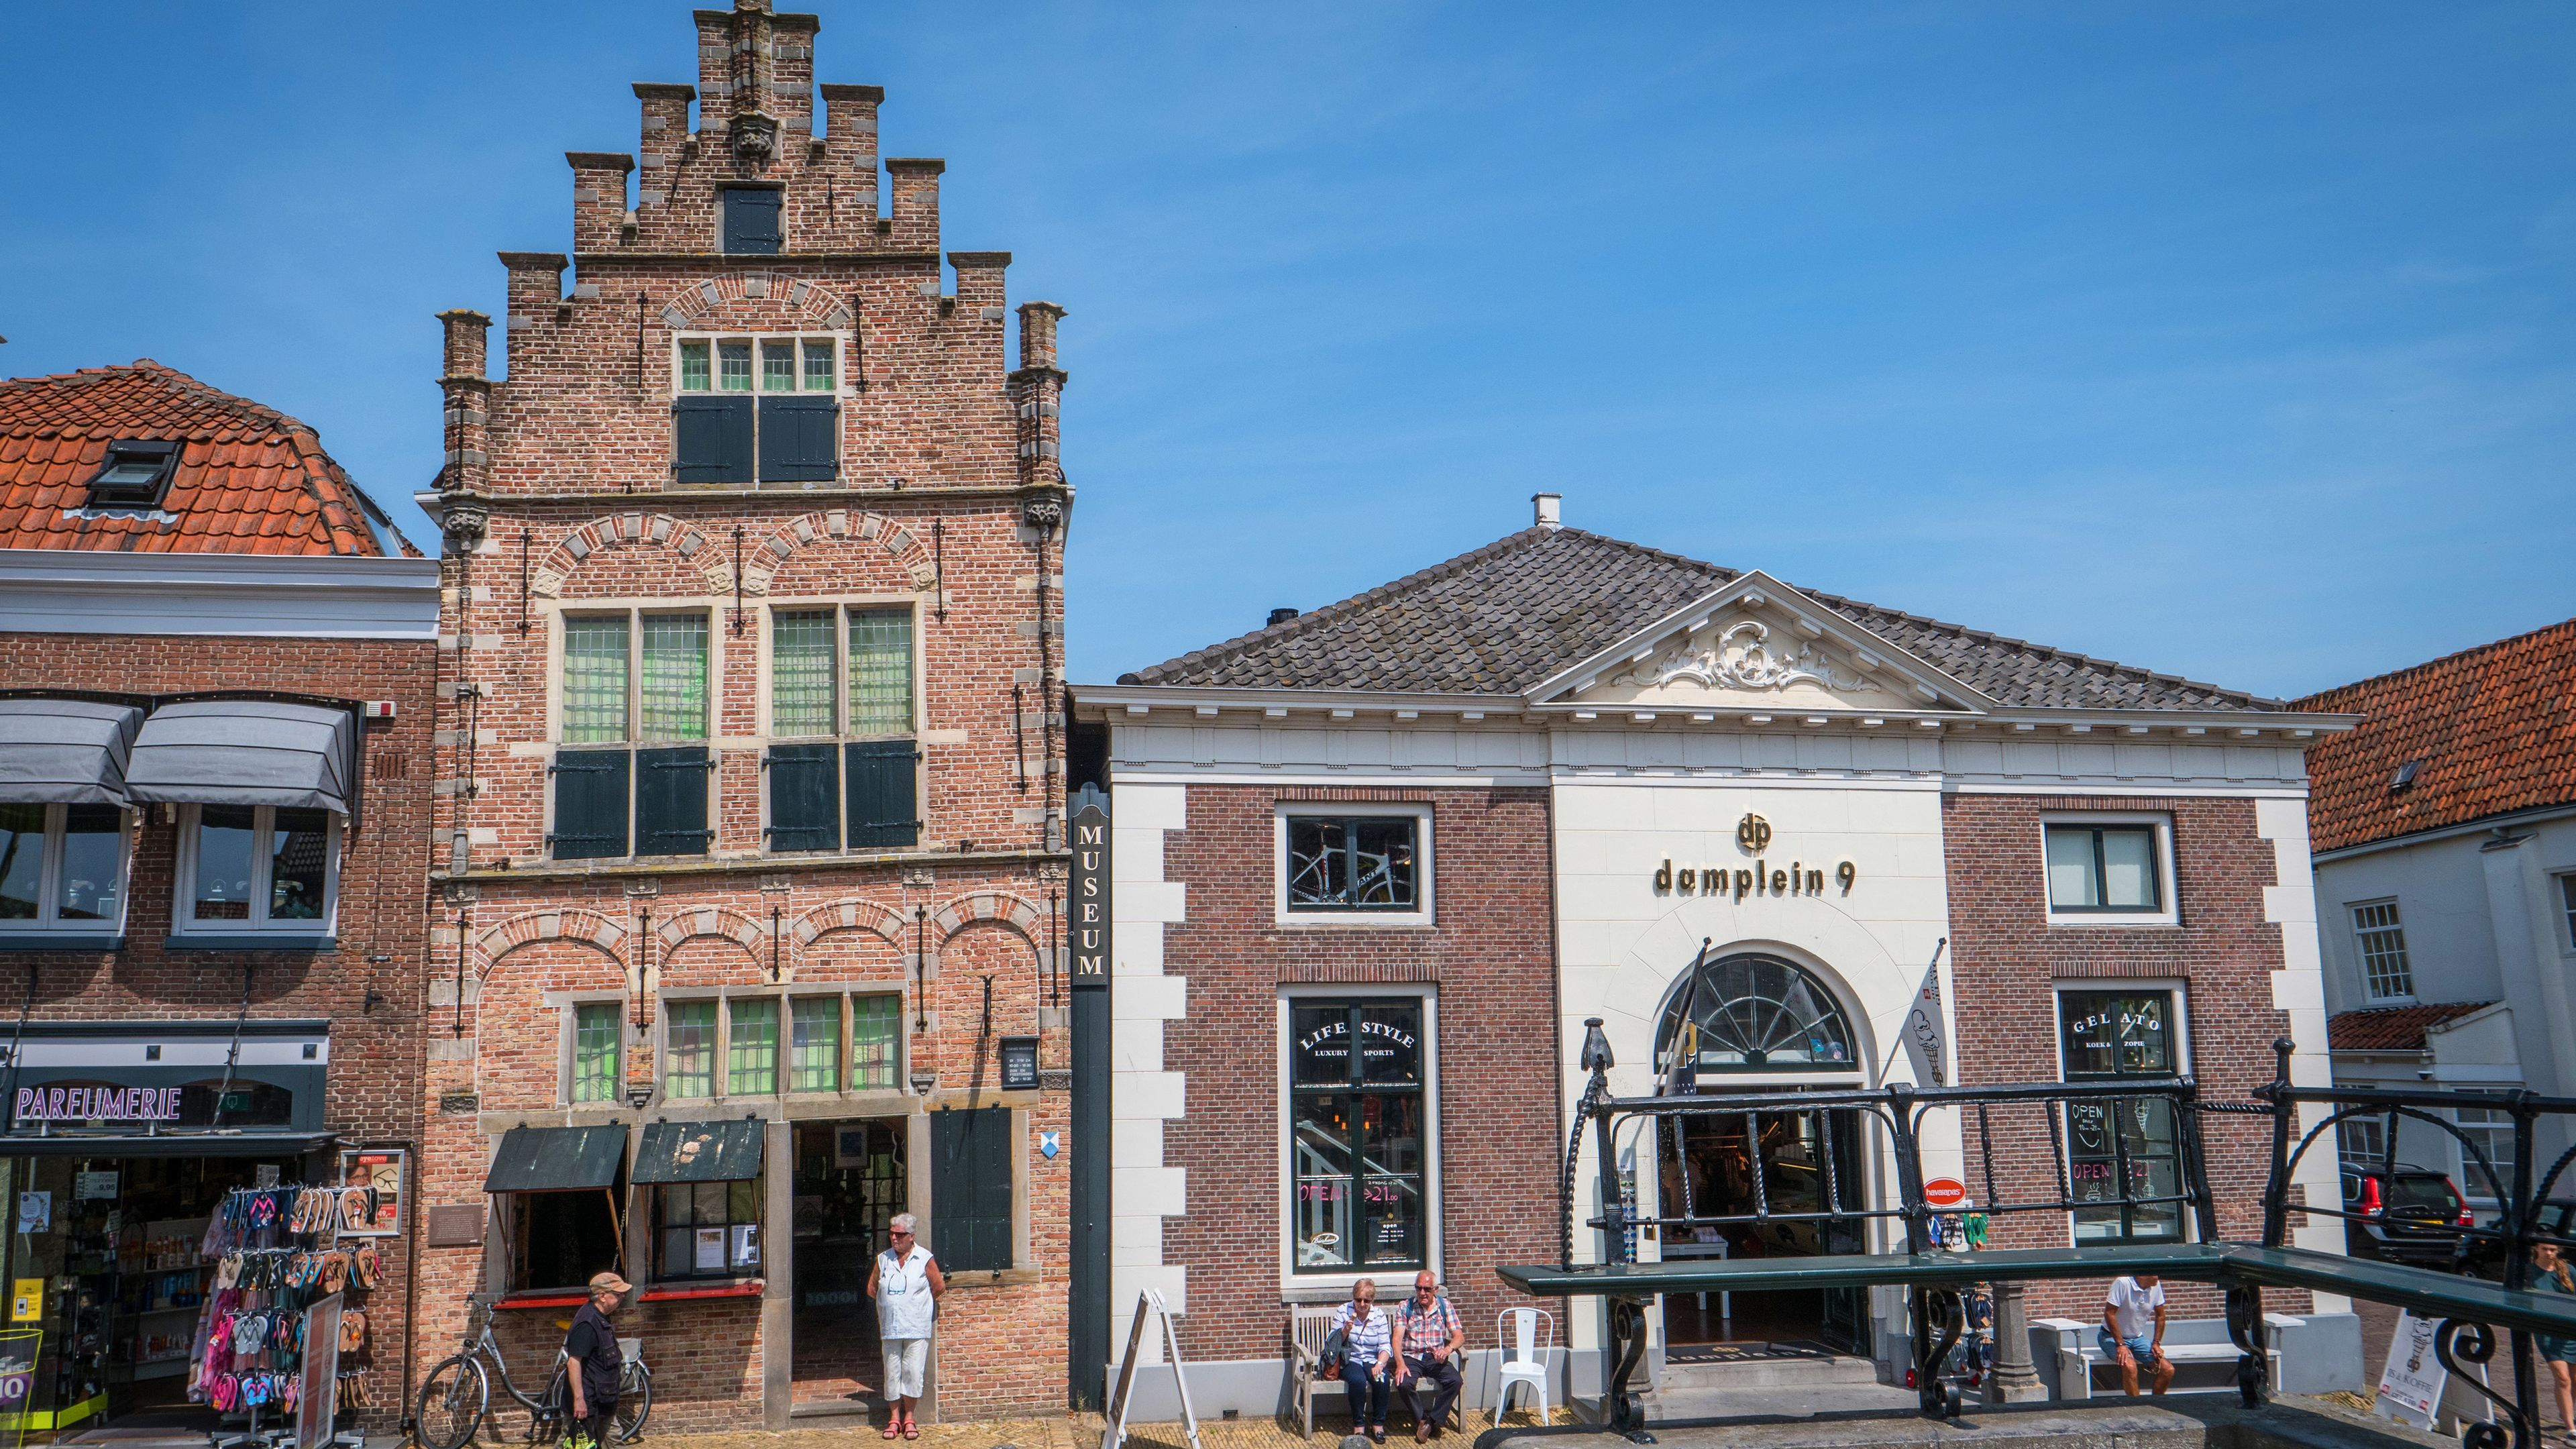 Exterior of buildings in Holland